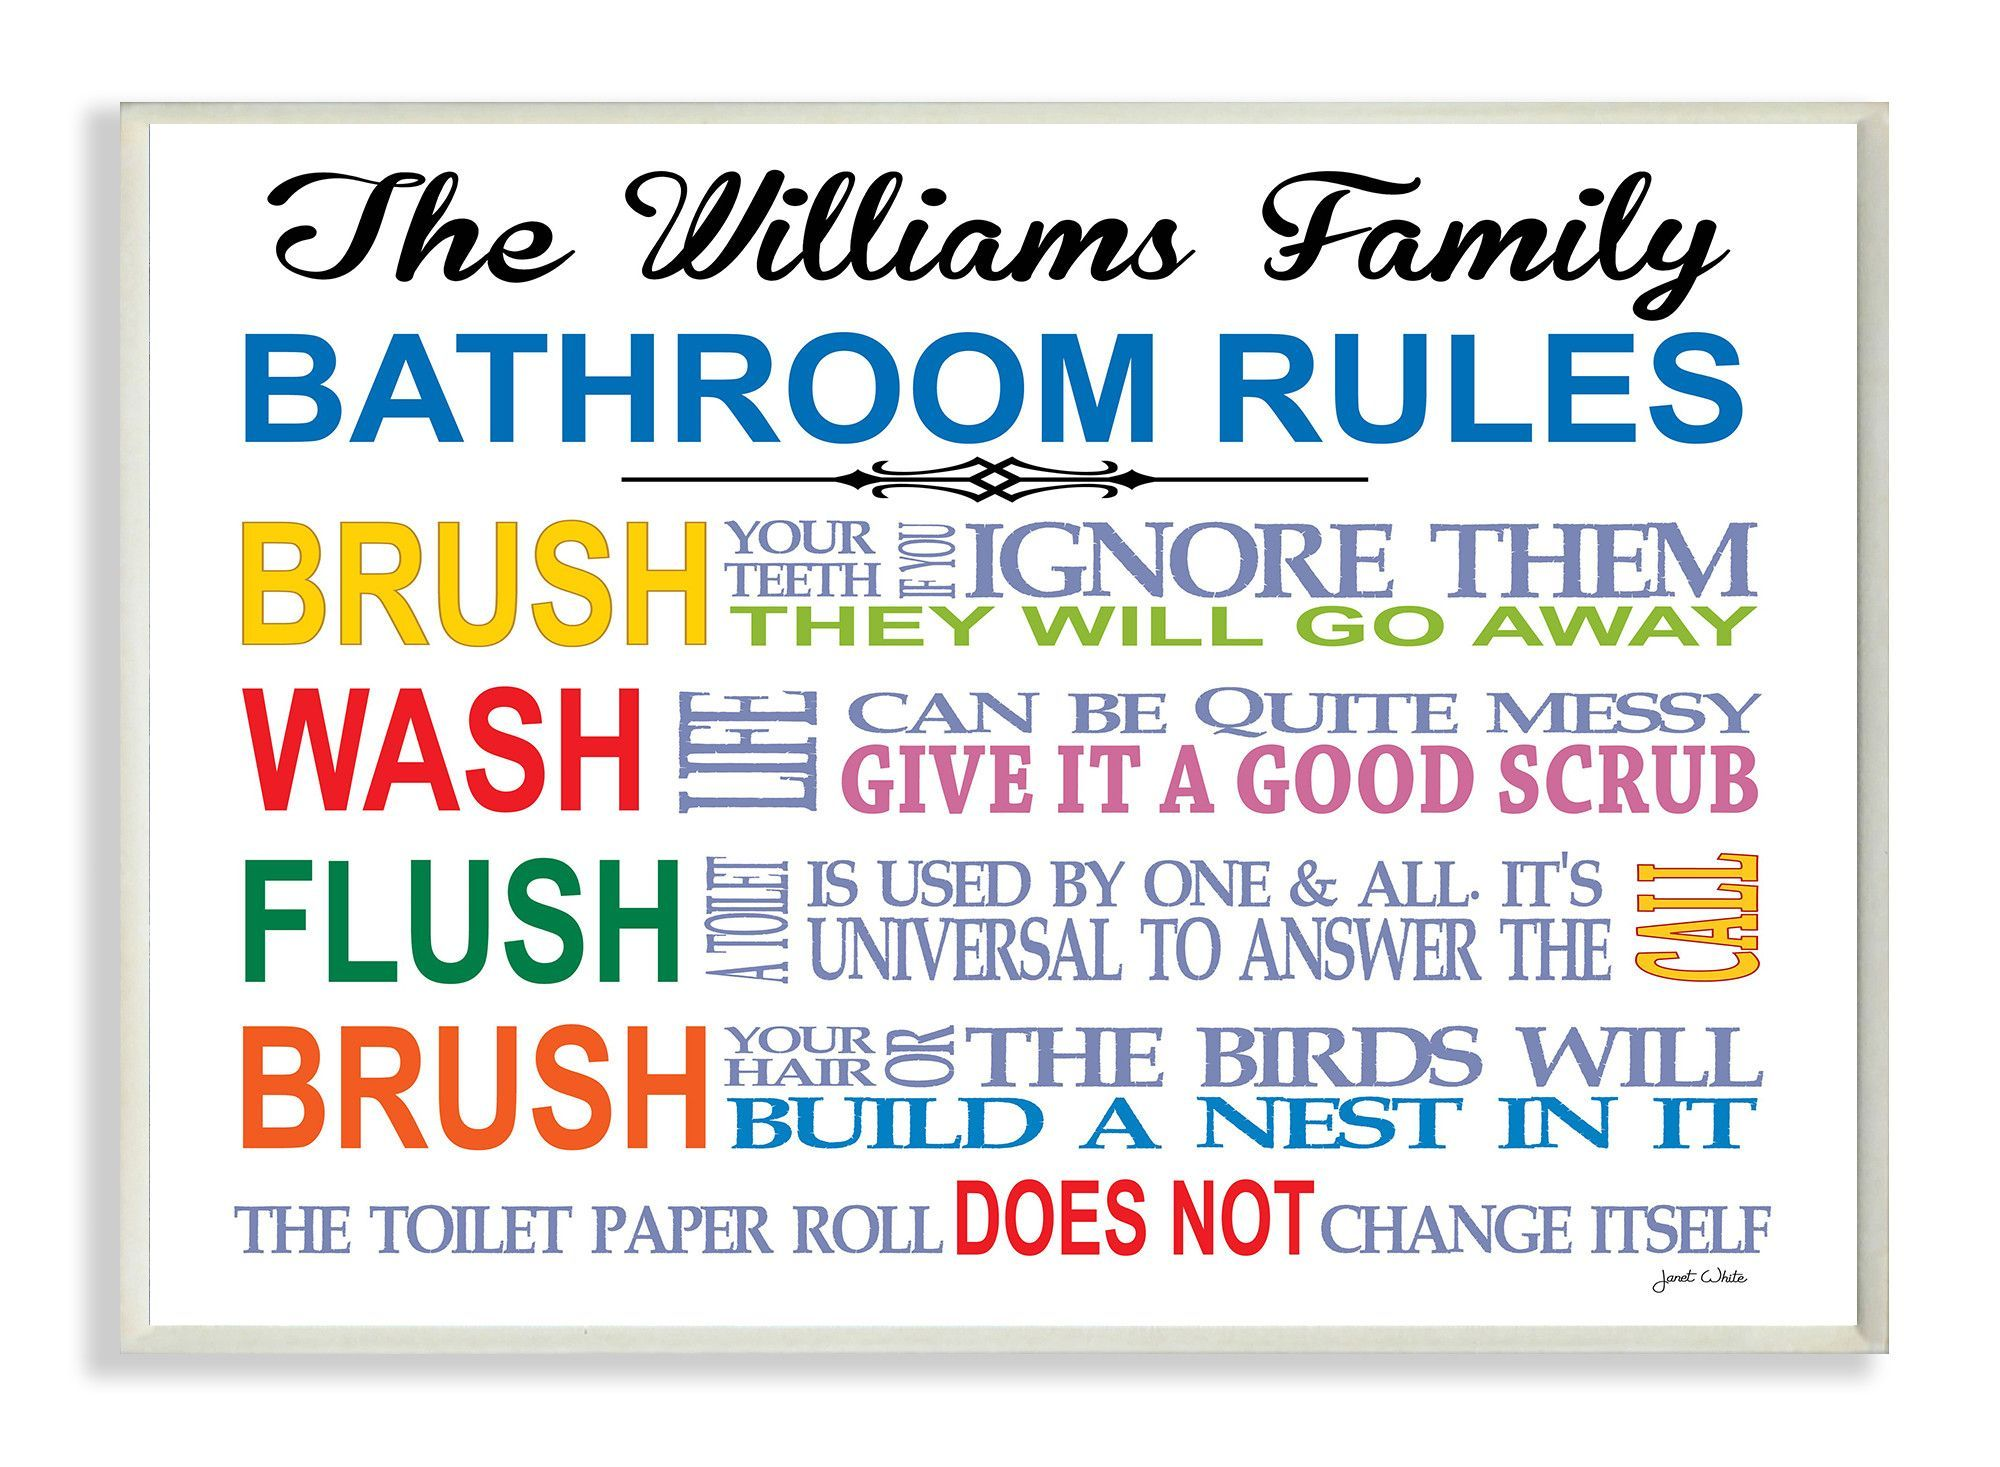 Personalized Bathroom Rules Rainbow By Janet White Textual Art Plaque In 2020 Bathroom Rules Bathroom Rainbow